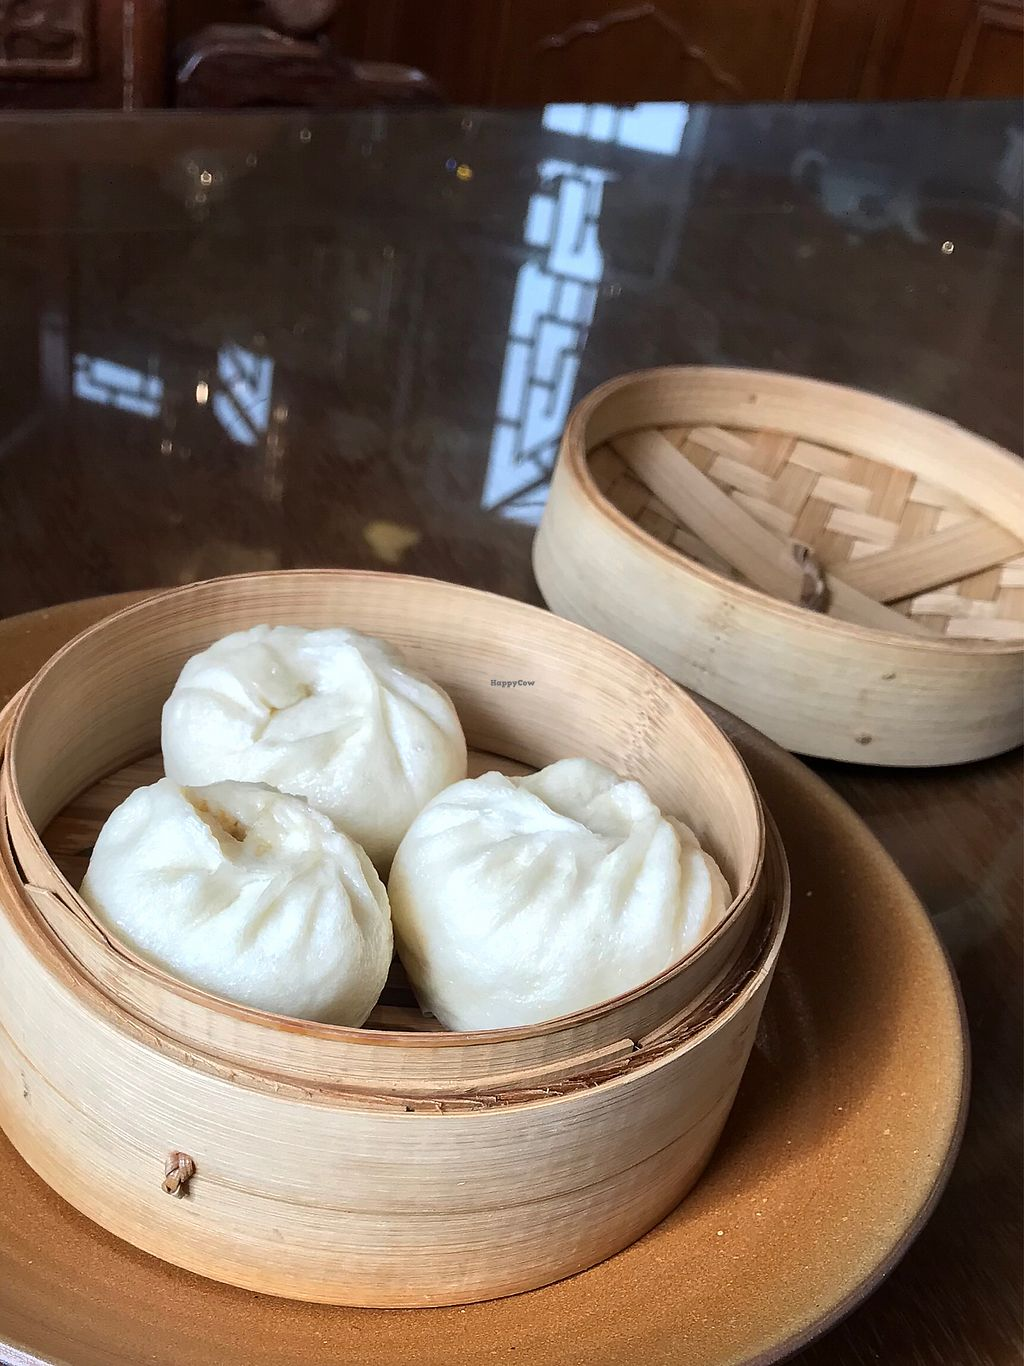 """Photo of Ming Tao Xuan  by <a href=""""/members/profile/JoeNg"""">JoeNg</a> <br/>Chinese vegan buns go to with tea <br/> March 17, 2018  - <a href='/contact/abuse/image/11805/372094'>Report</a>"""